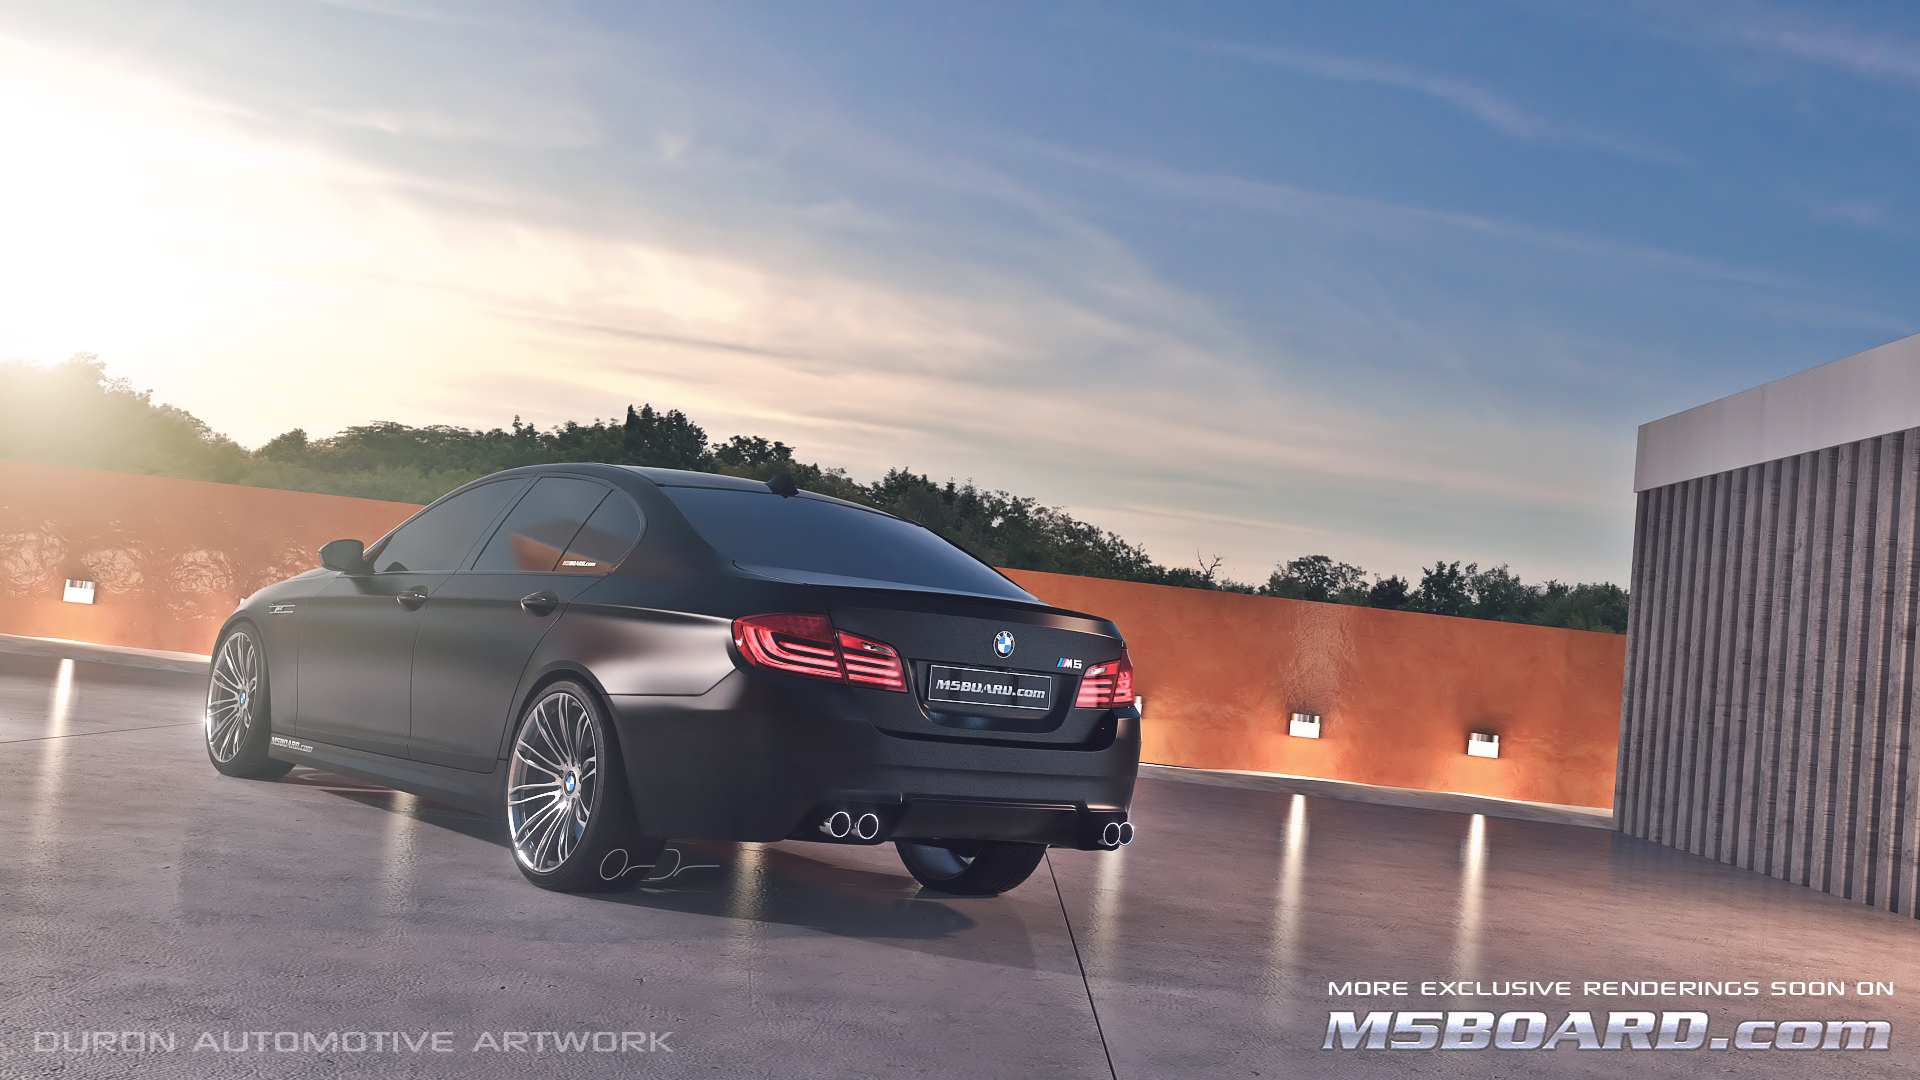 Picture (3D Studio computerrendering): BMW M5 F10 2011 in clear Indianapolis Red + Interlagos Blue at the Luxury Estate from the Front and Rear-frozenblackbmwm5f102011m5boardrear.jpg